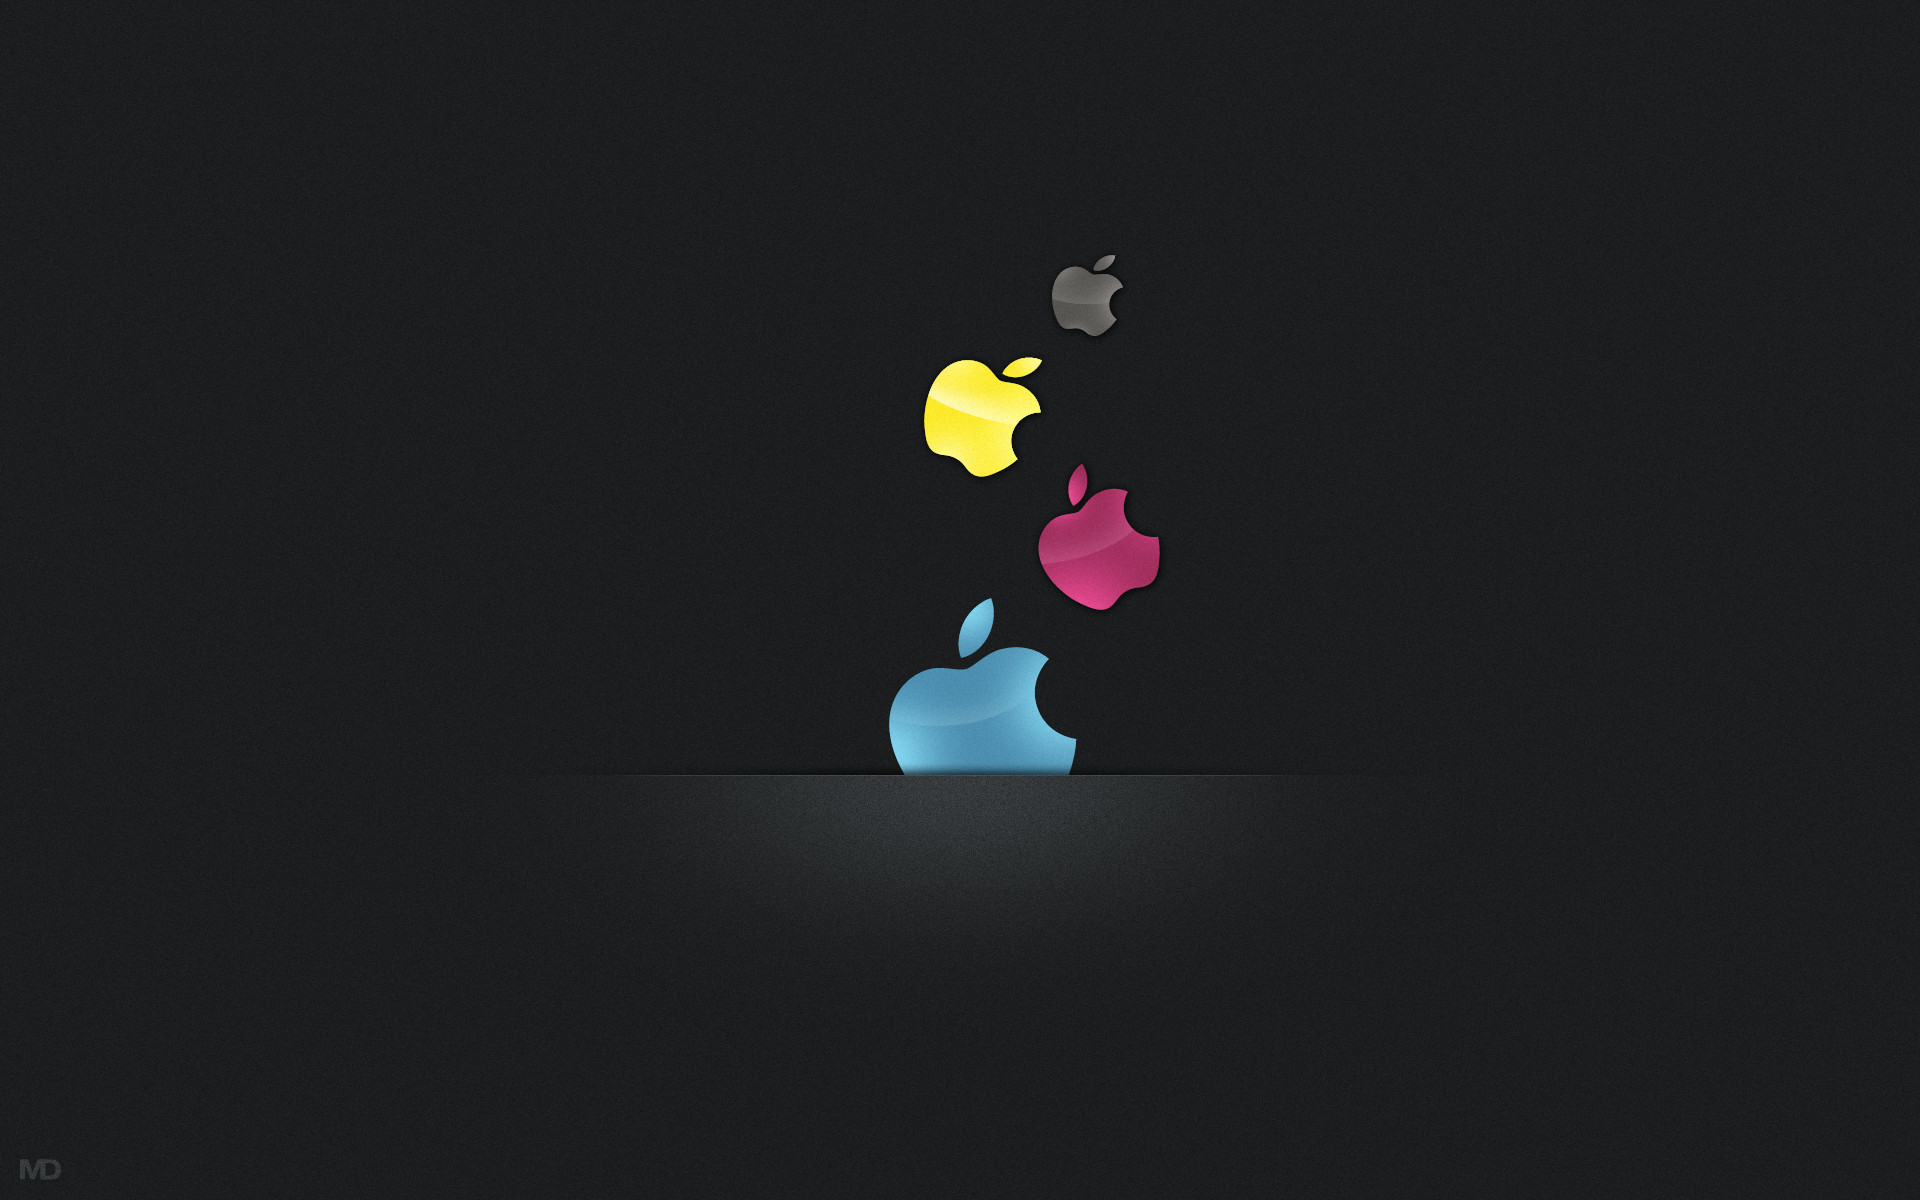 CMYK vs Apple HD Wallpaper Theme Bin   Customization HD Wallpapers 1920x1200